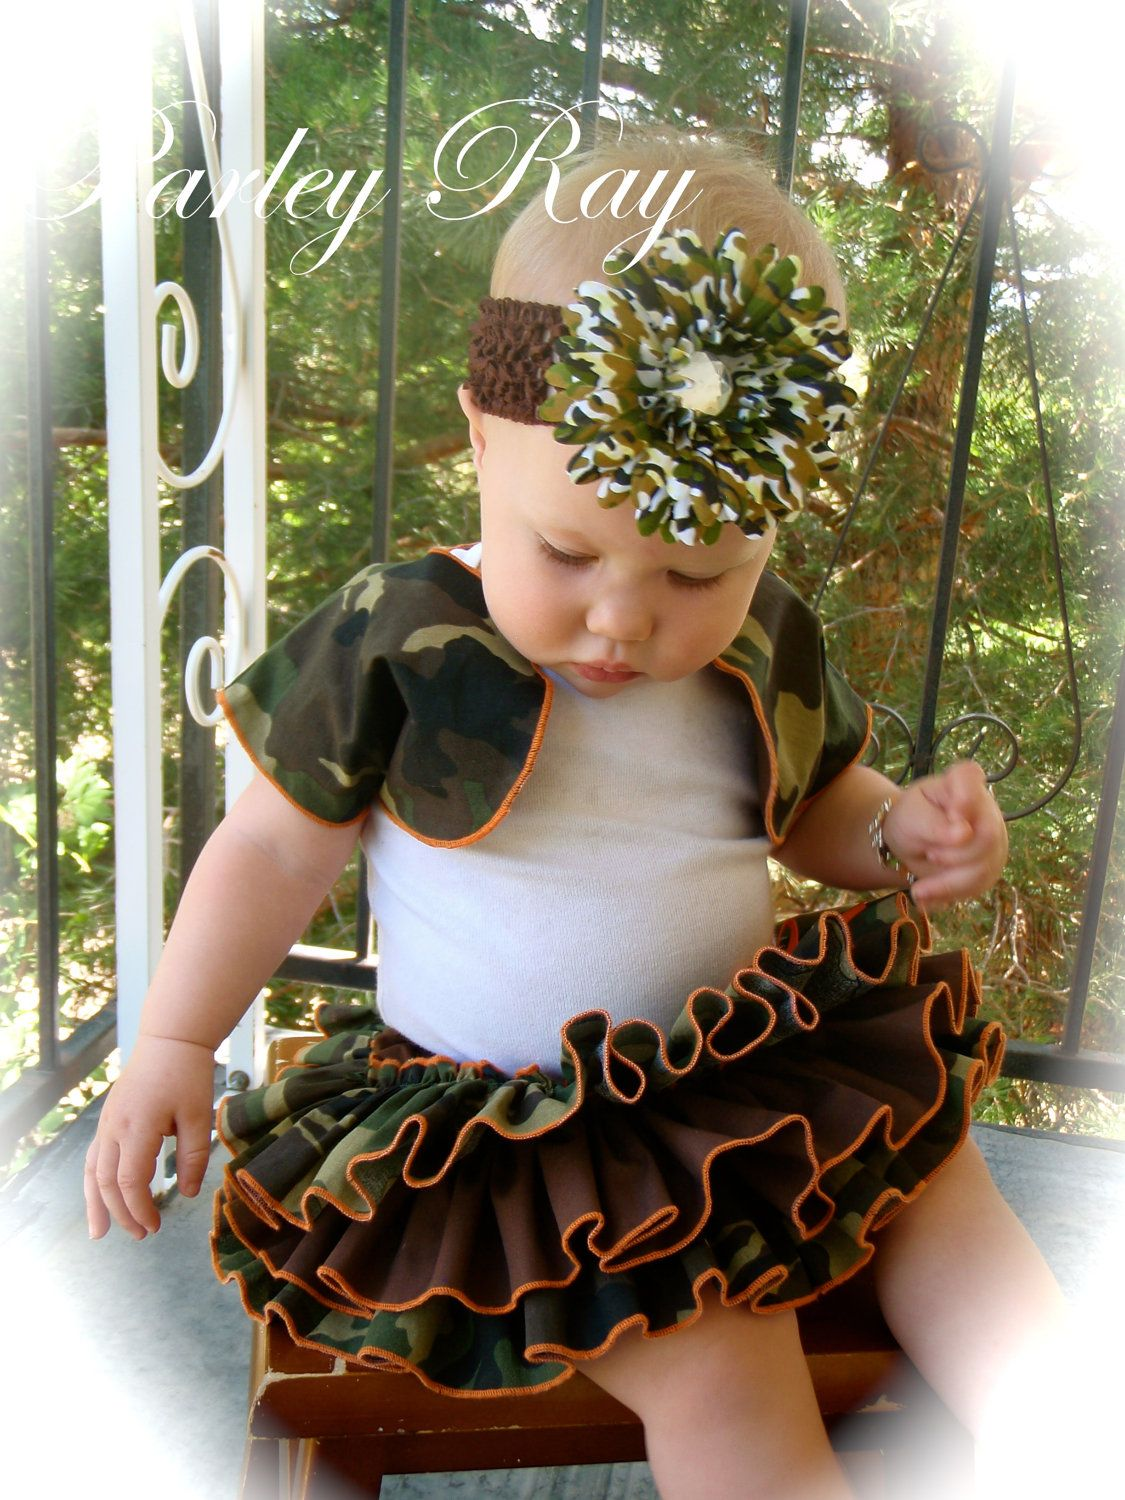 Baby Girl Camo Clothes Glamorous Beautiful Parley Ray Daddy's Girl Camo All Around Ruffled Skirt Design Inspiration